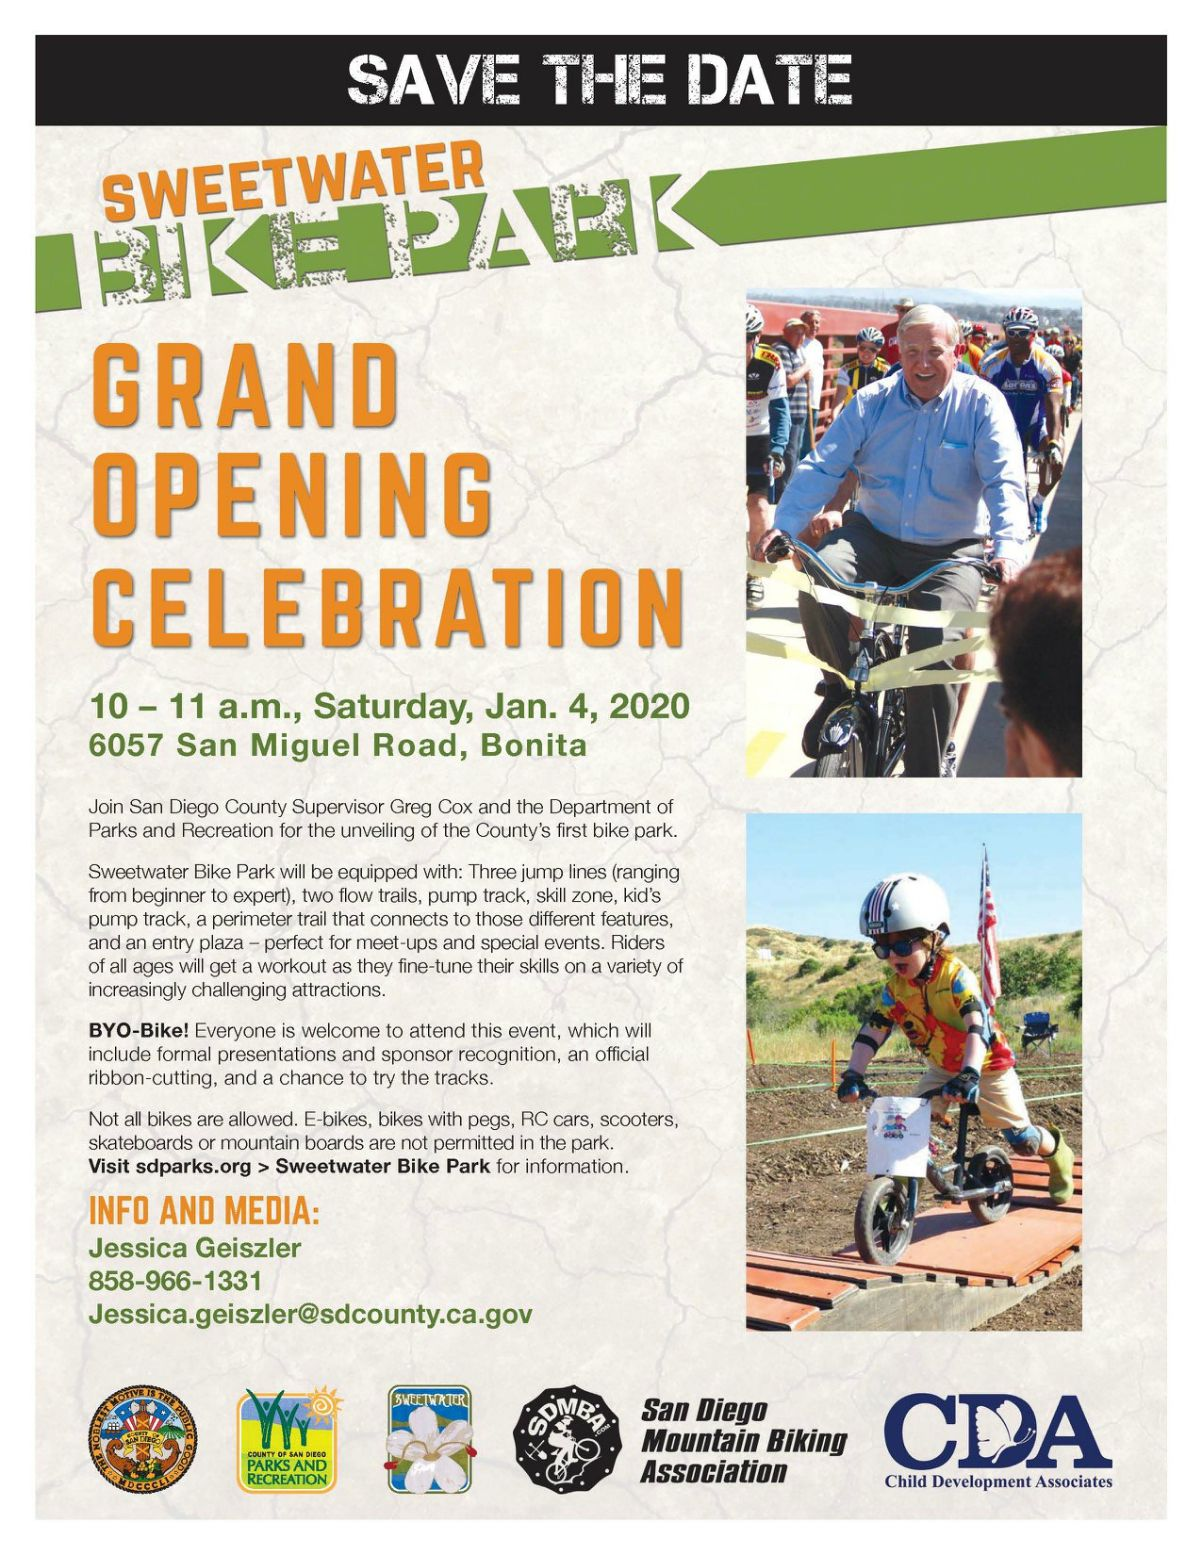 Sweetwater Bike Park Grand Opening